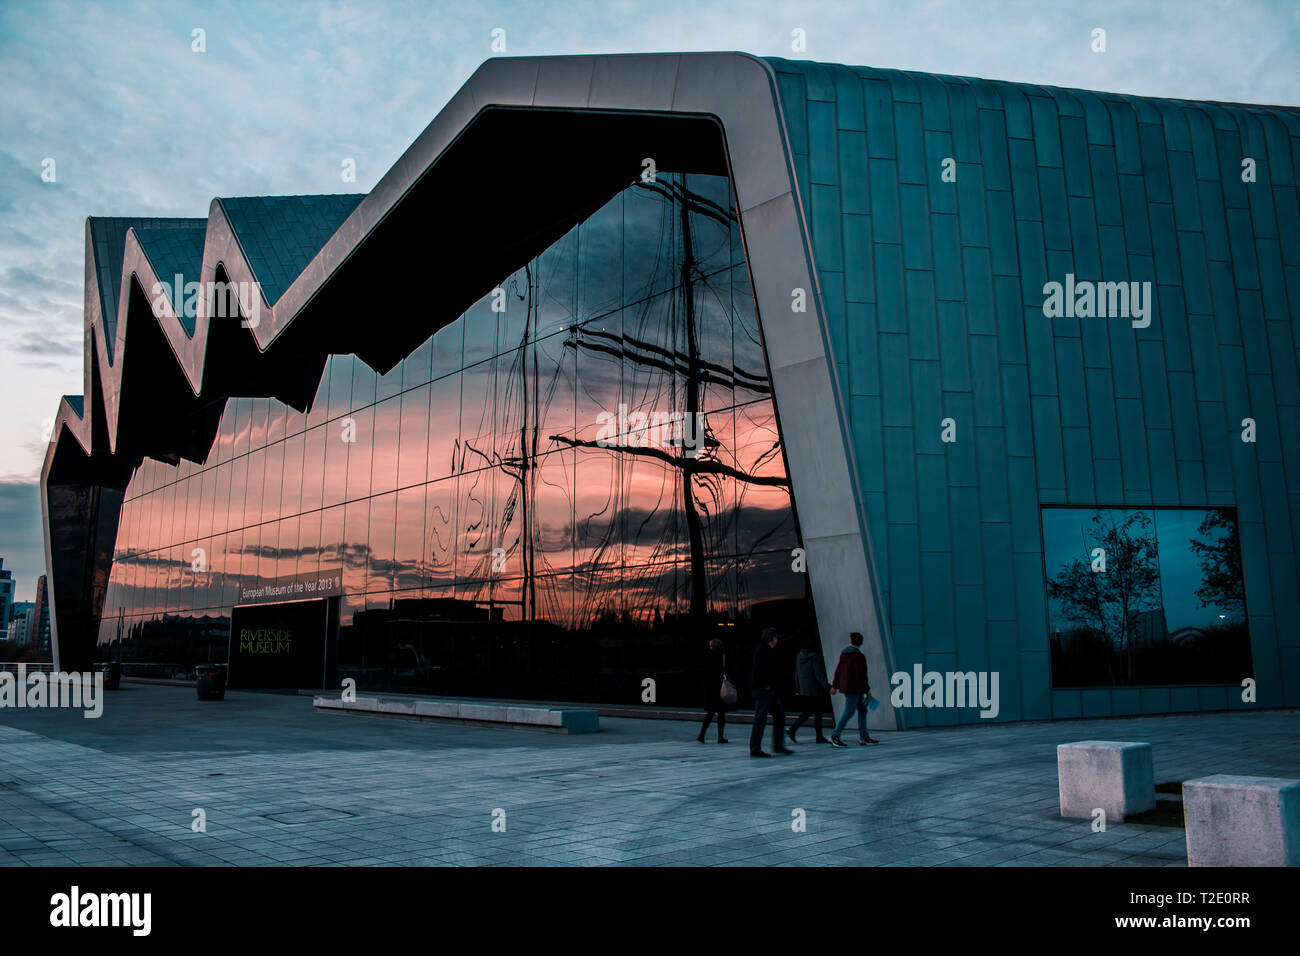 The Riverside transport museum and tall ship on the River Clyde, Glasgow - Stock Image